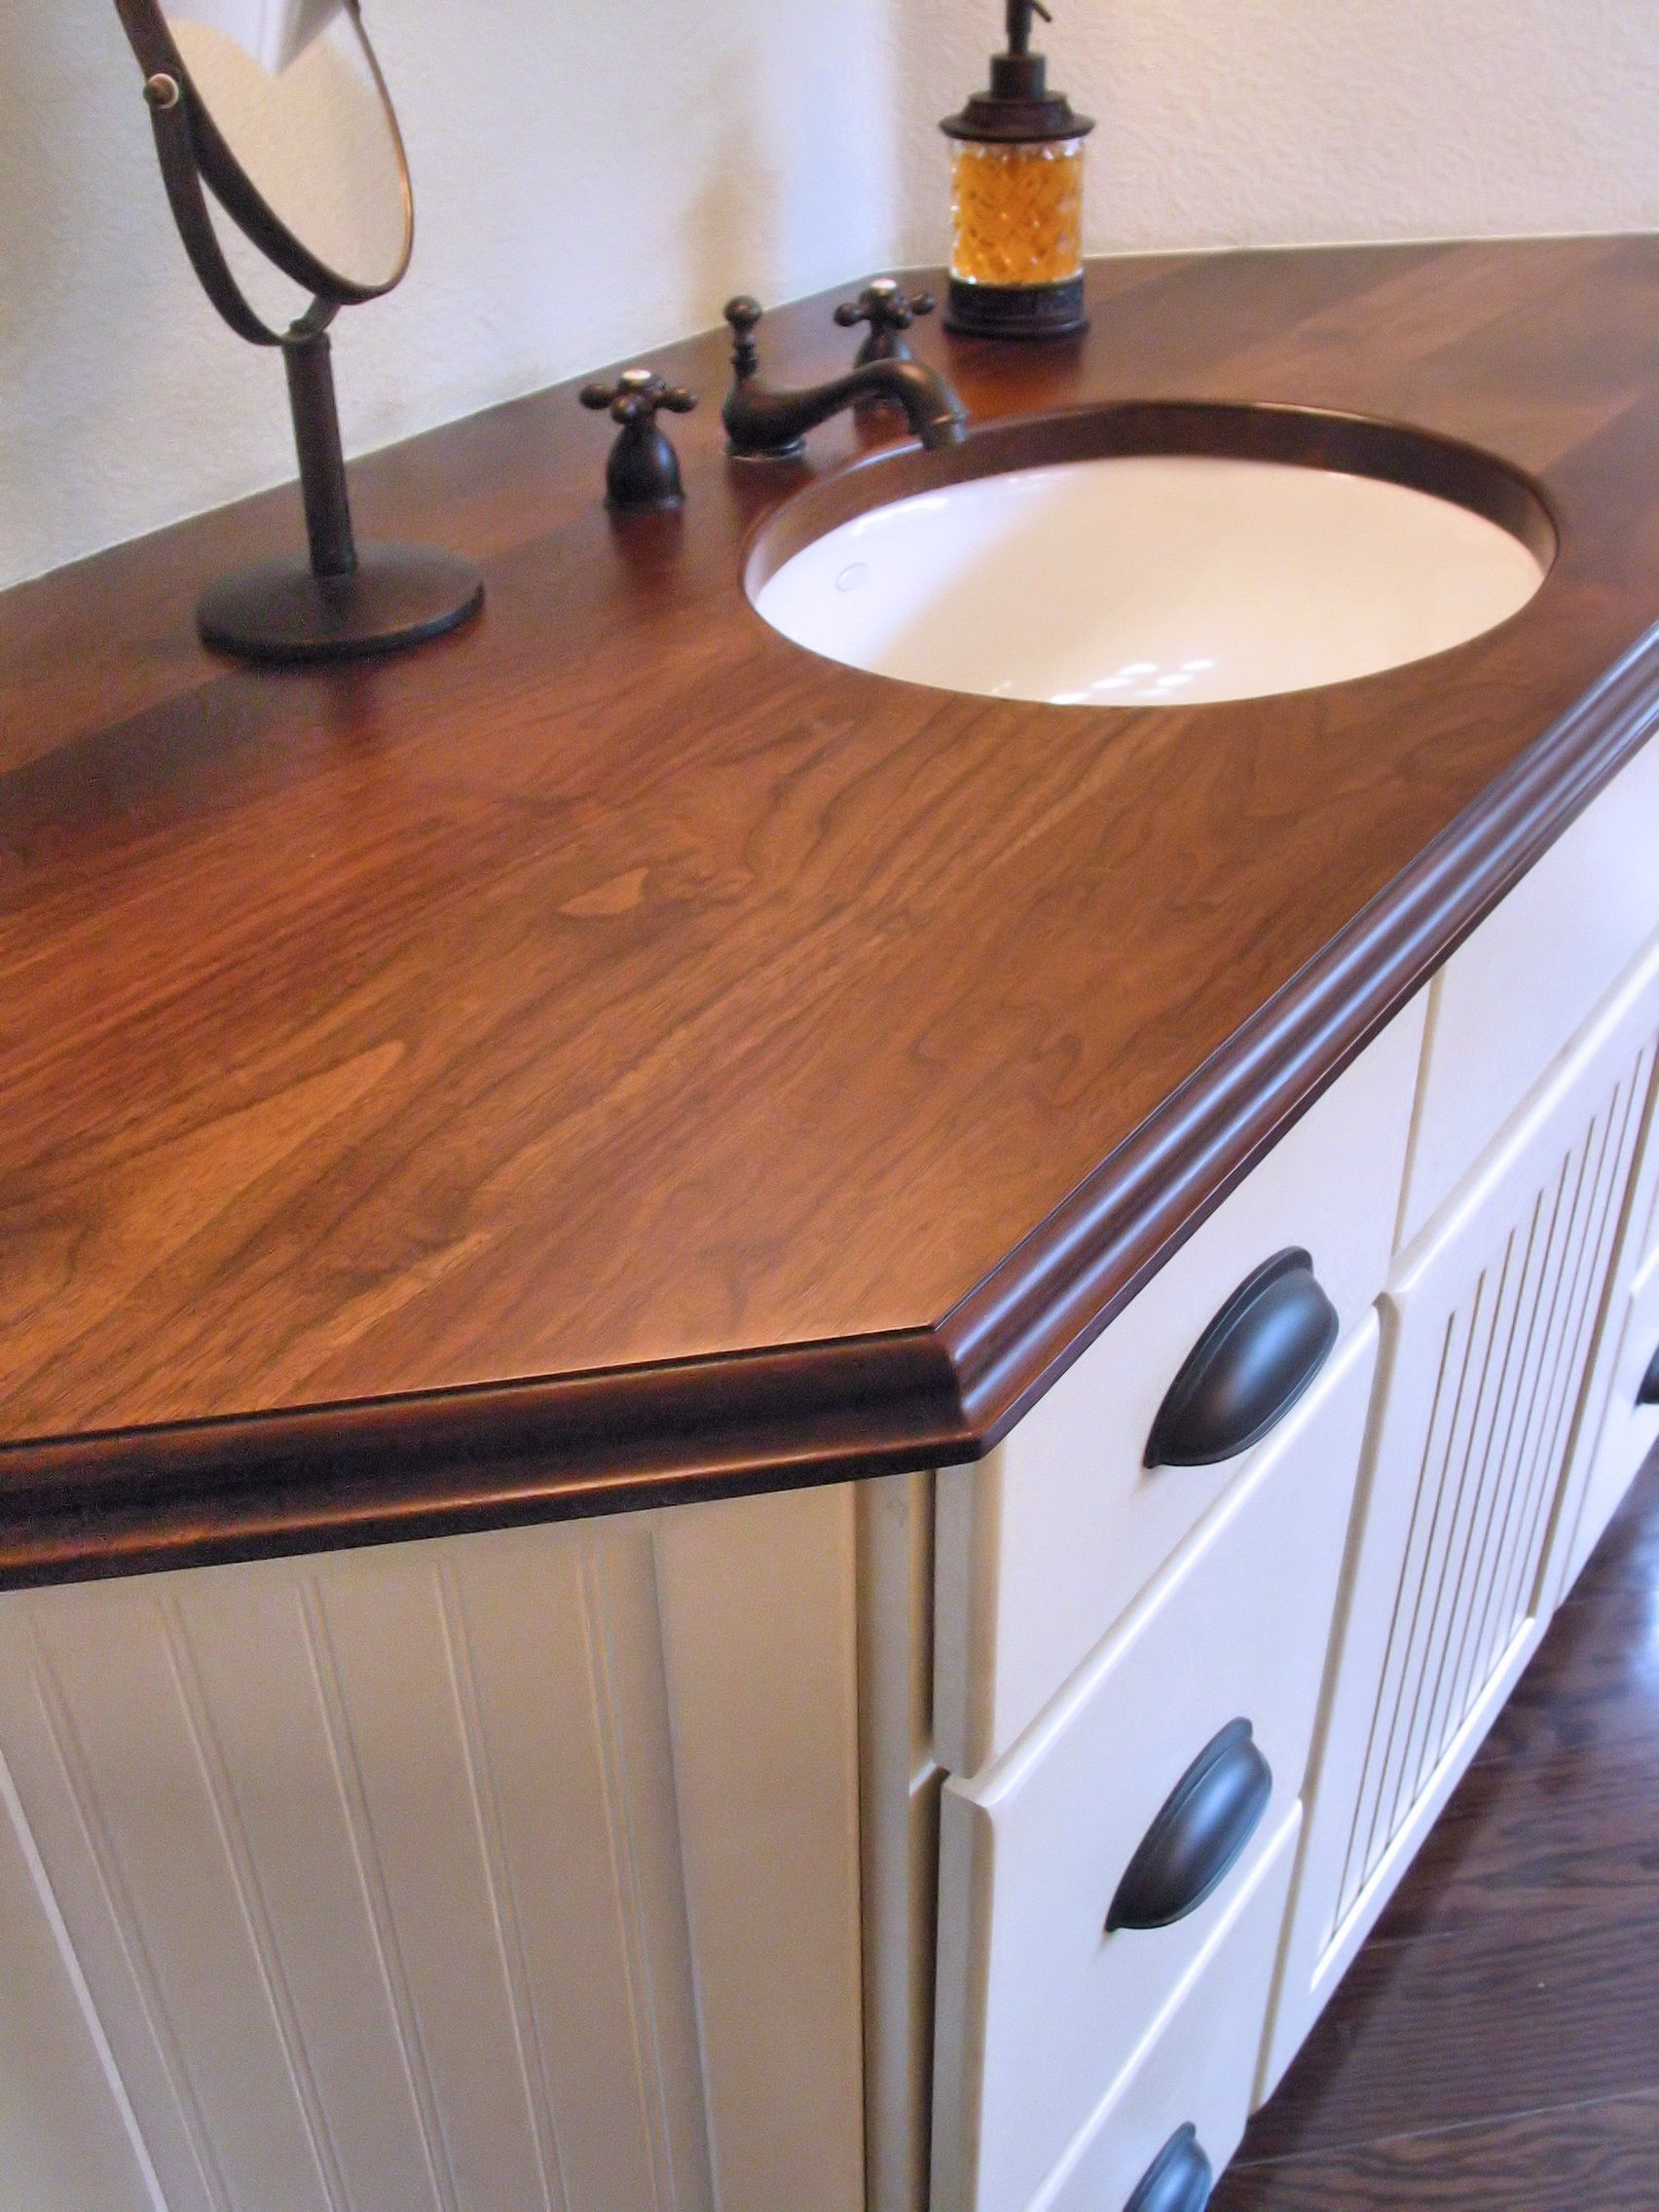 Walnut Face Grain Wood Vanity Countertop